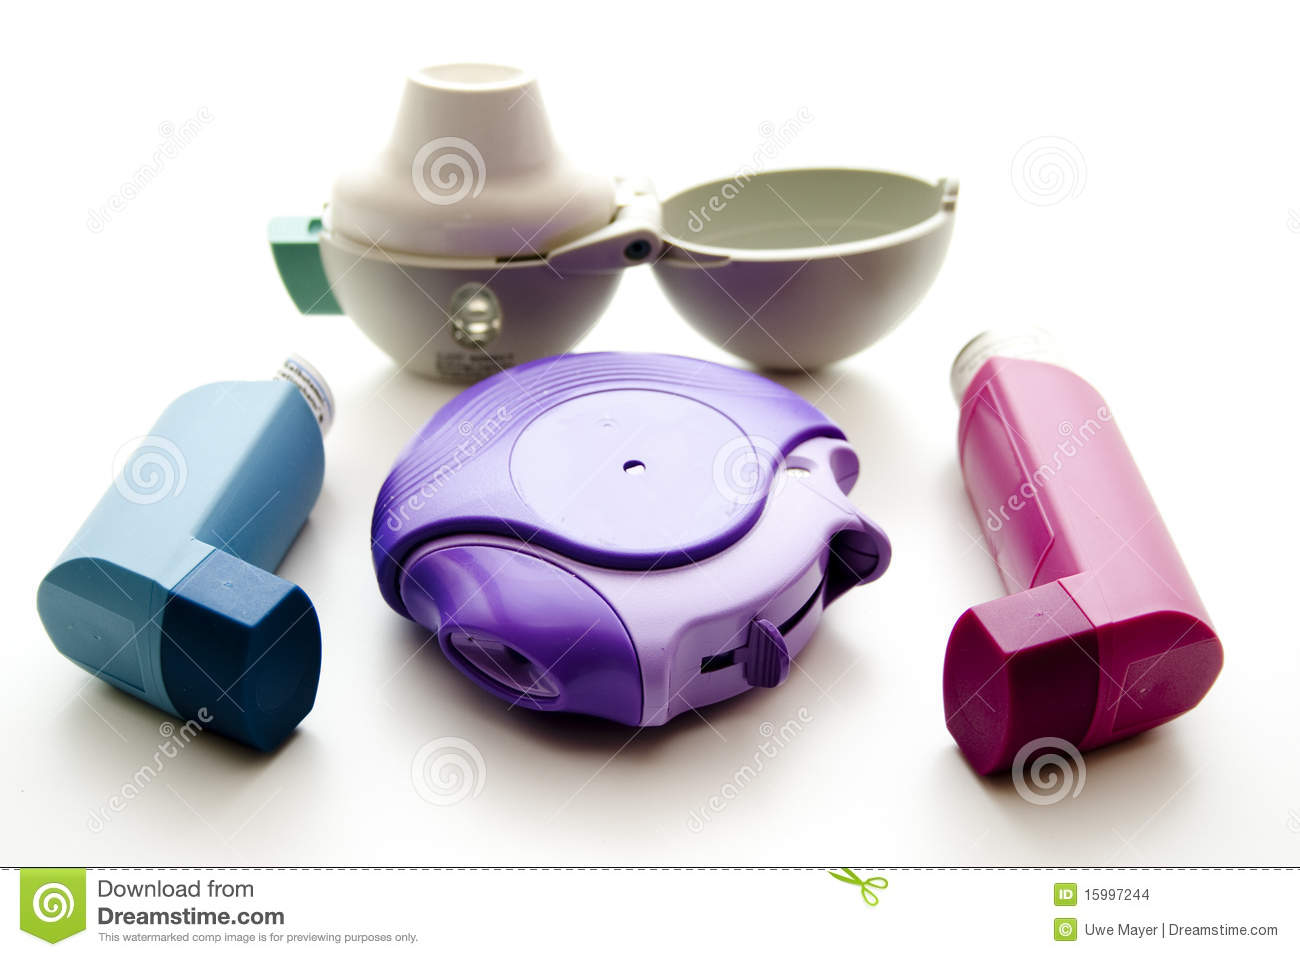 Inhalers for asthma and suffering from a lung disease ones.